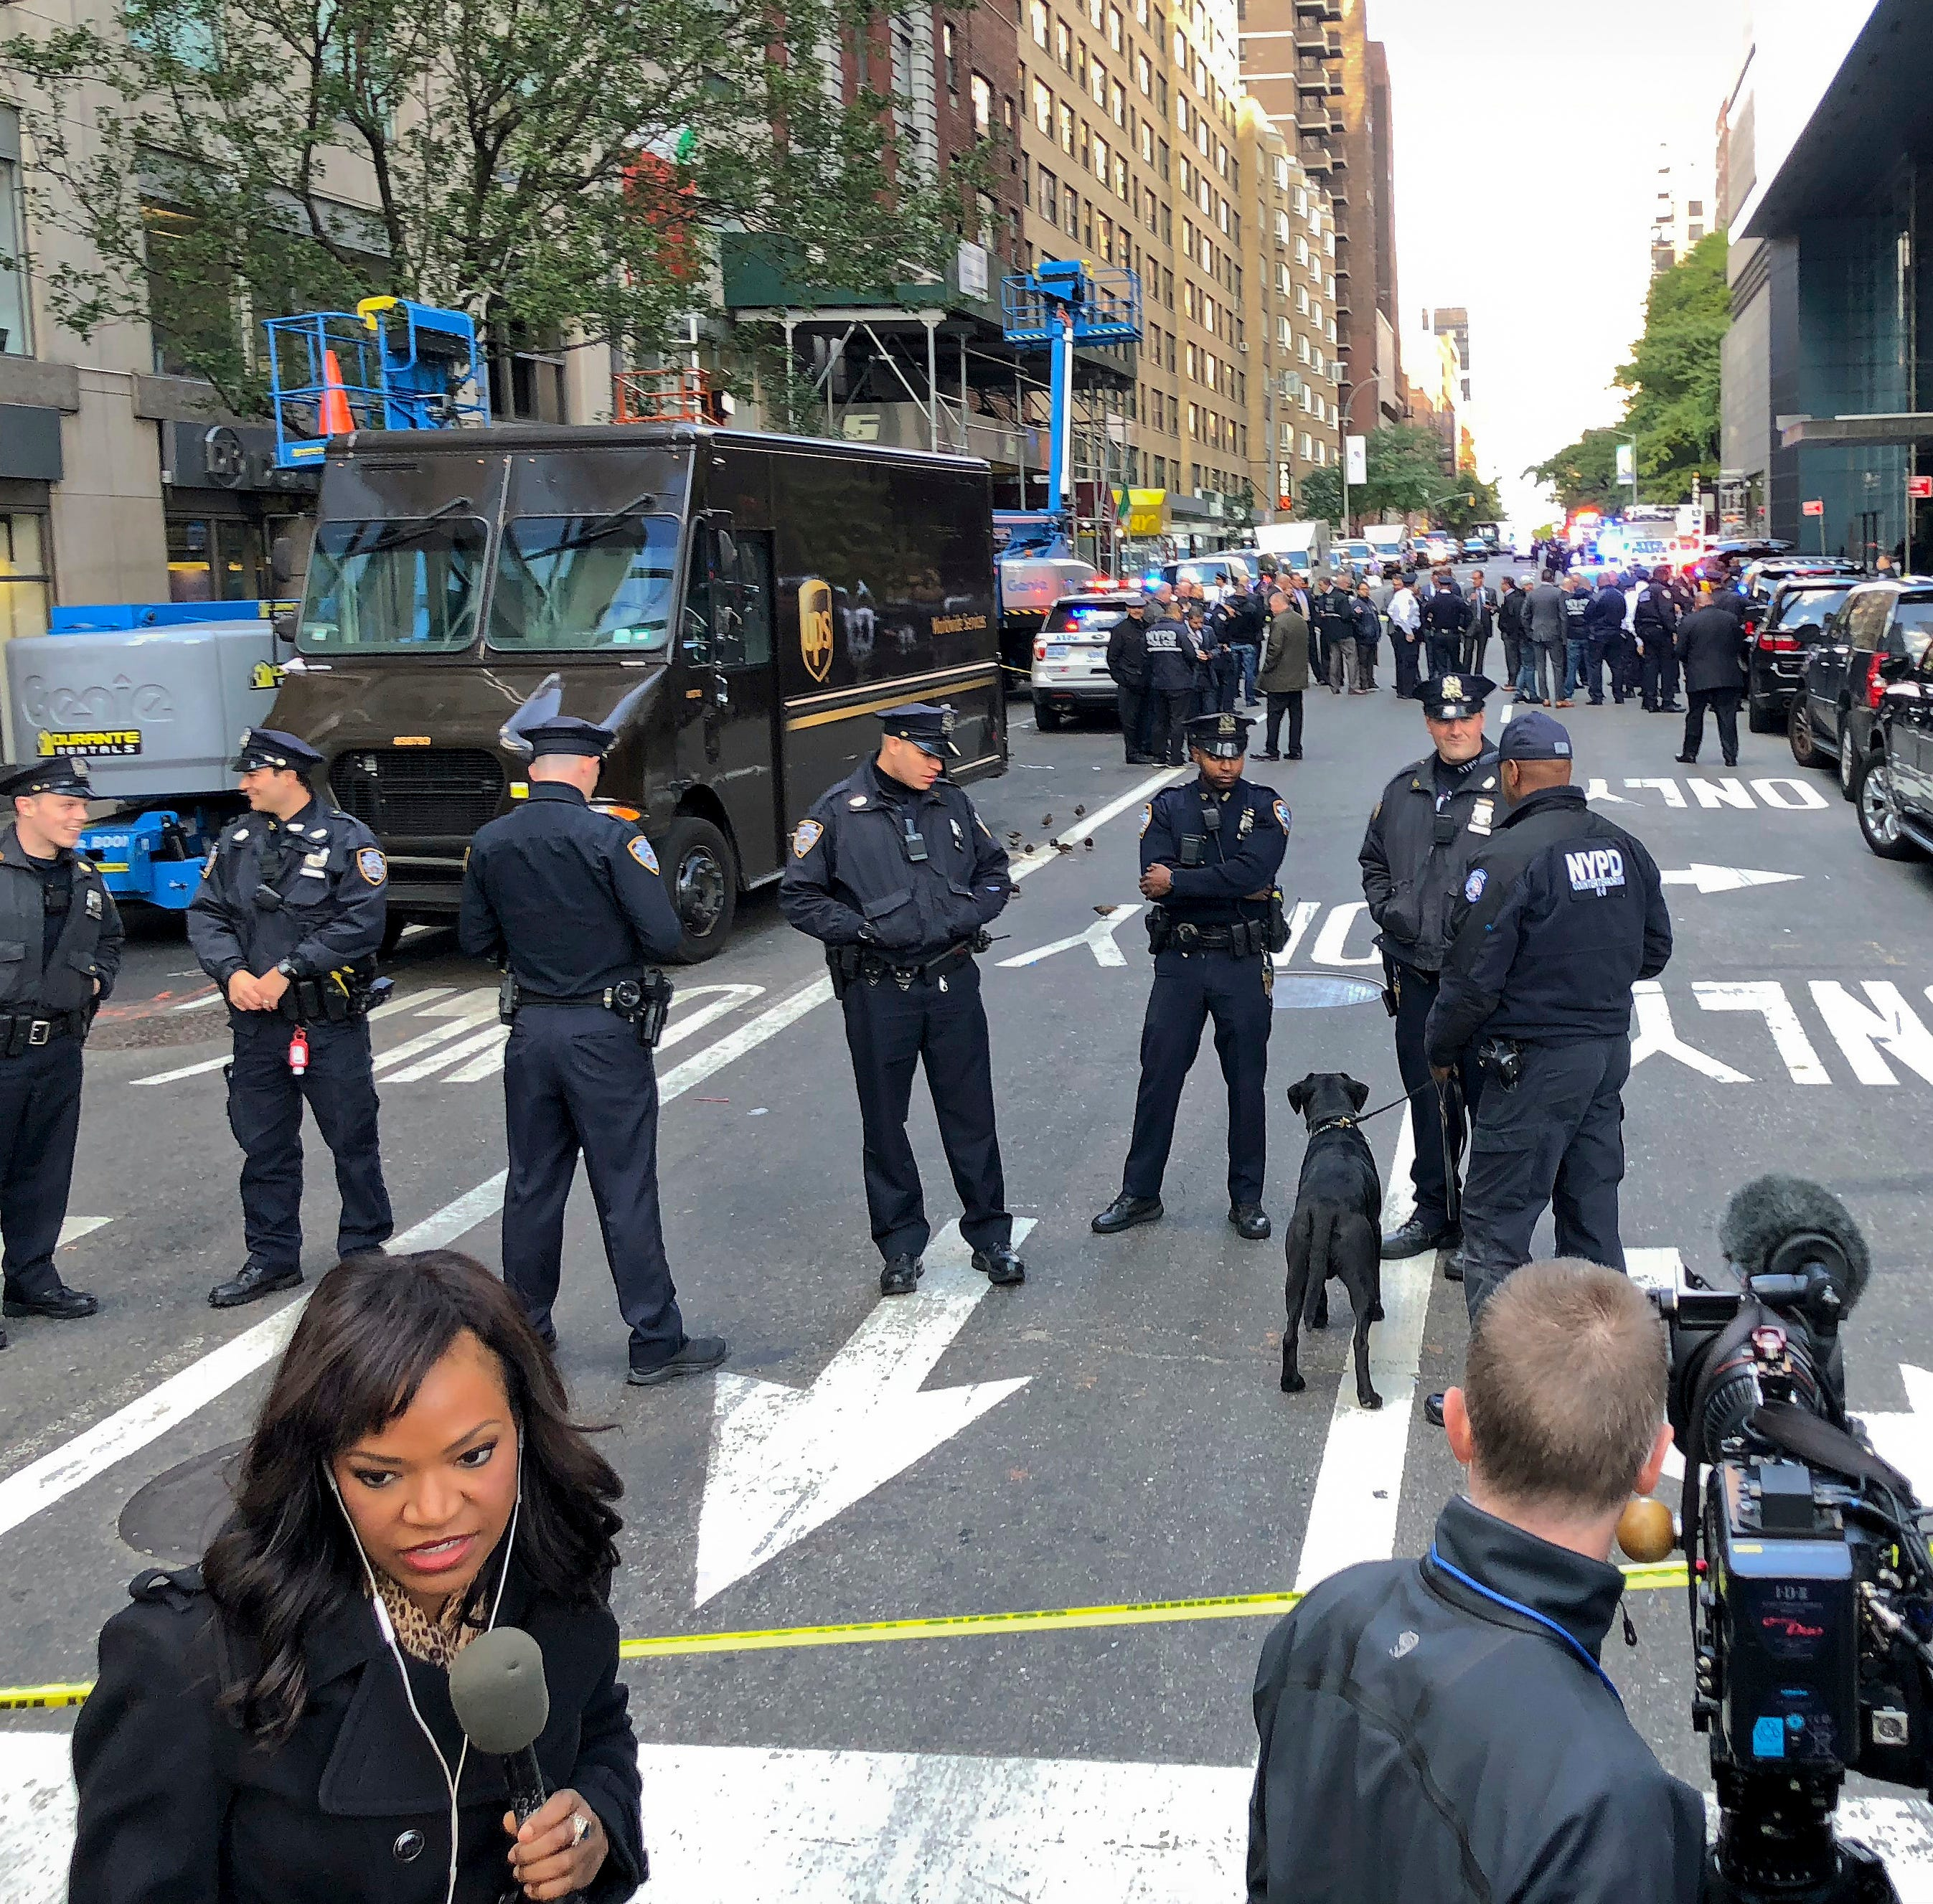 Believe this: Obama, Clinton, NYC bomb scare a reminder that credible media is a must